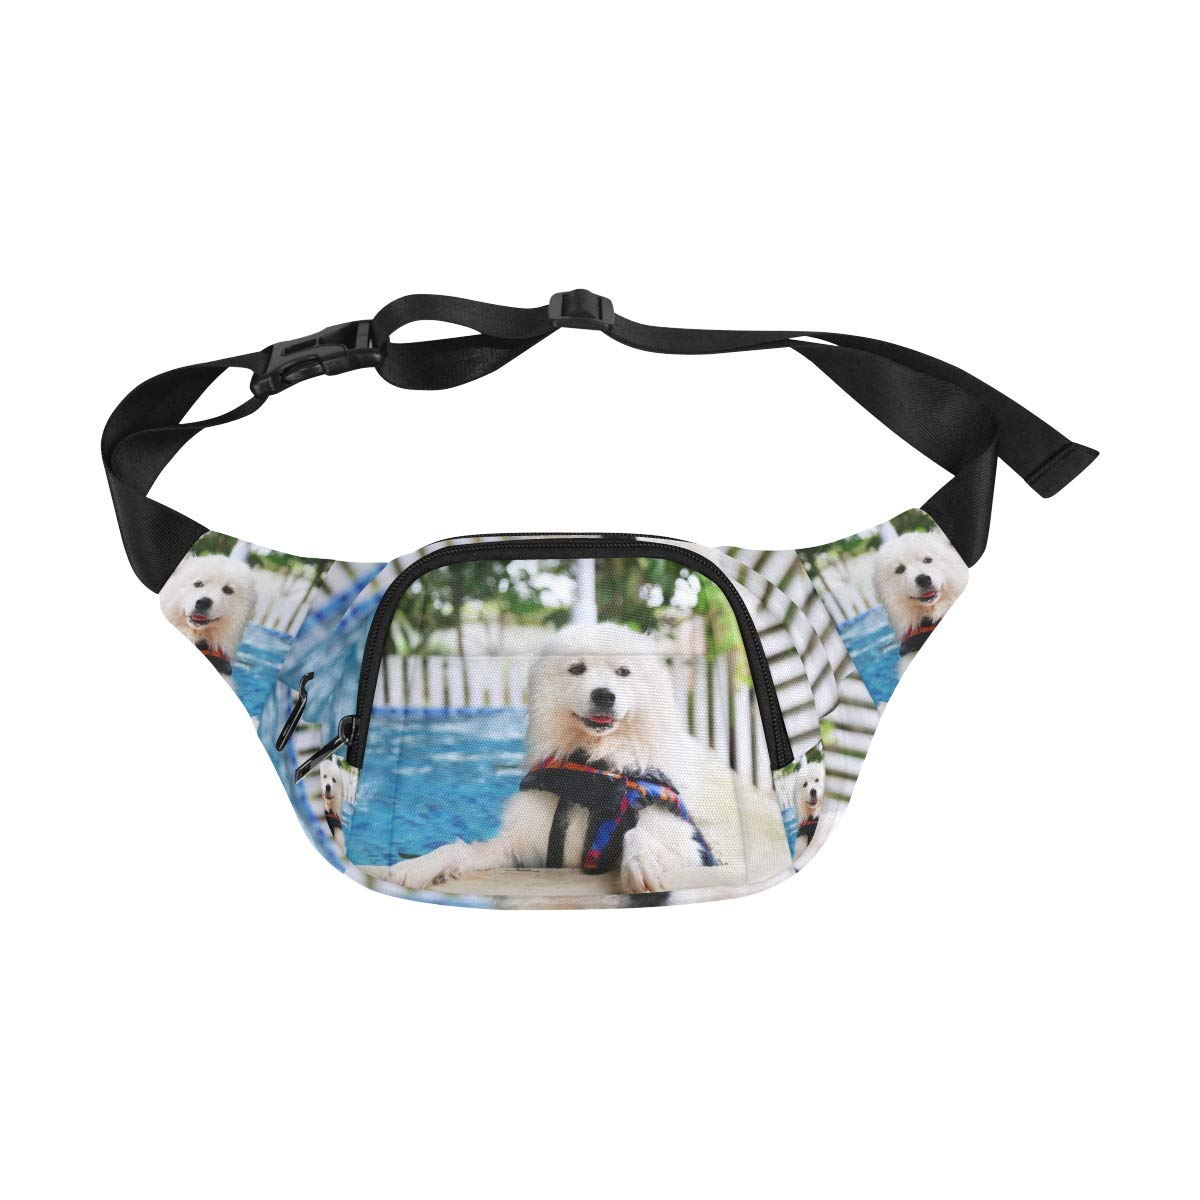 Happy Dog Swimming Dog Smiling Fenny Packs Waist Bags Adjustable Belt Waterproof Nylon Travel Running Sport Vacation Party For Men Women Boys Girls Kids